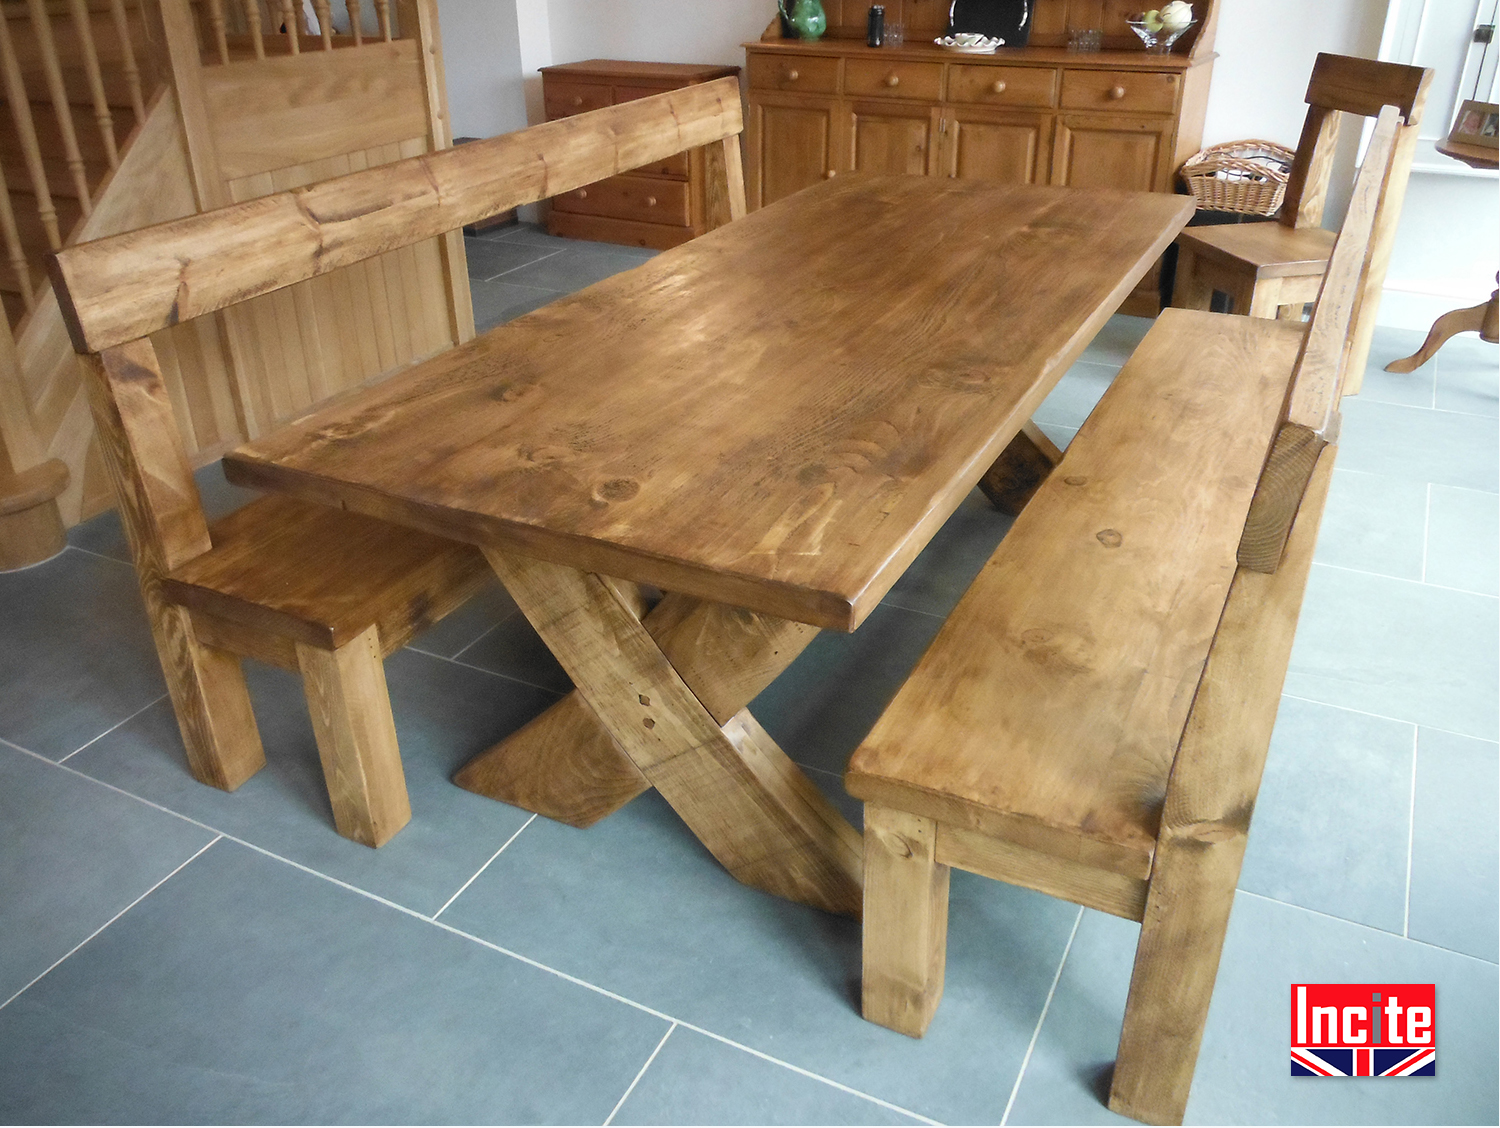 Completely new Derbyshire Handcrafted Plank Crossed Leg Table by Incite RG72